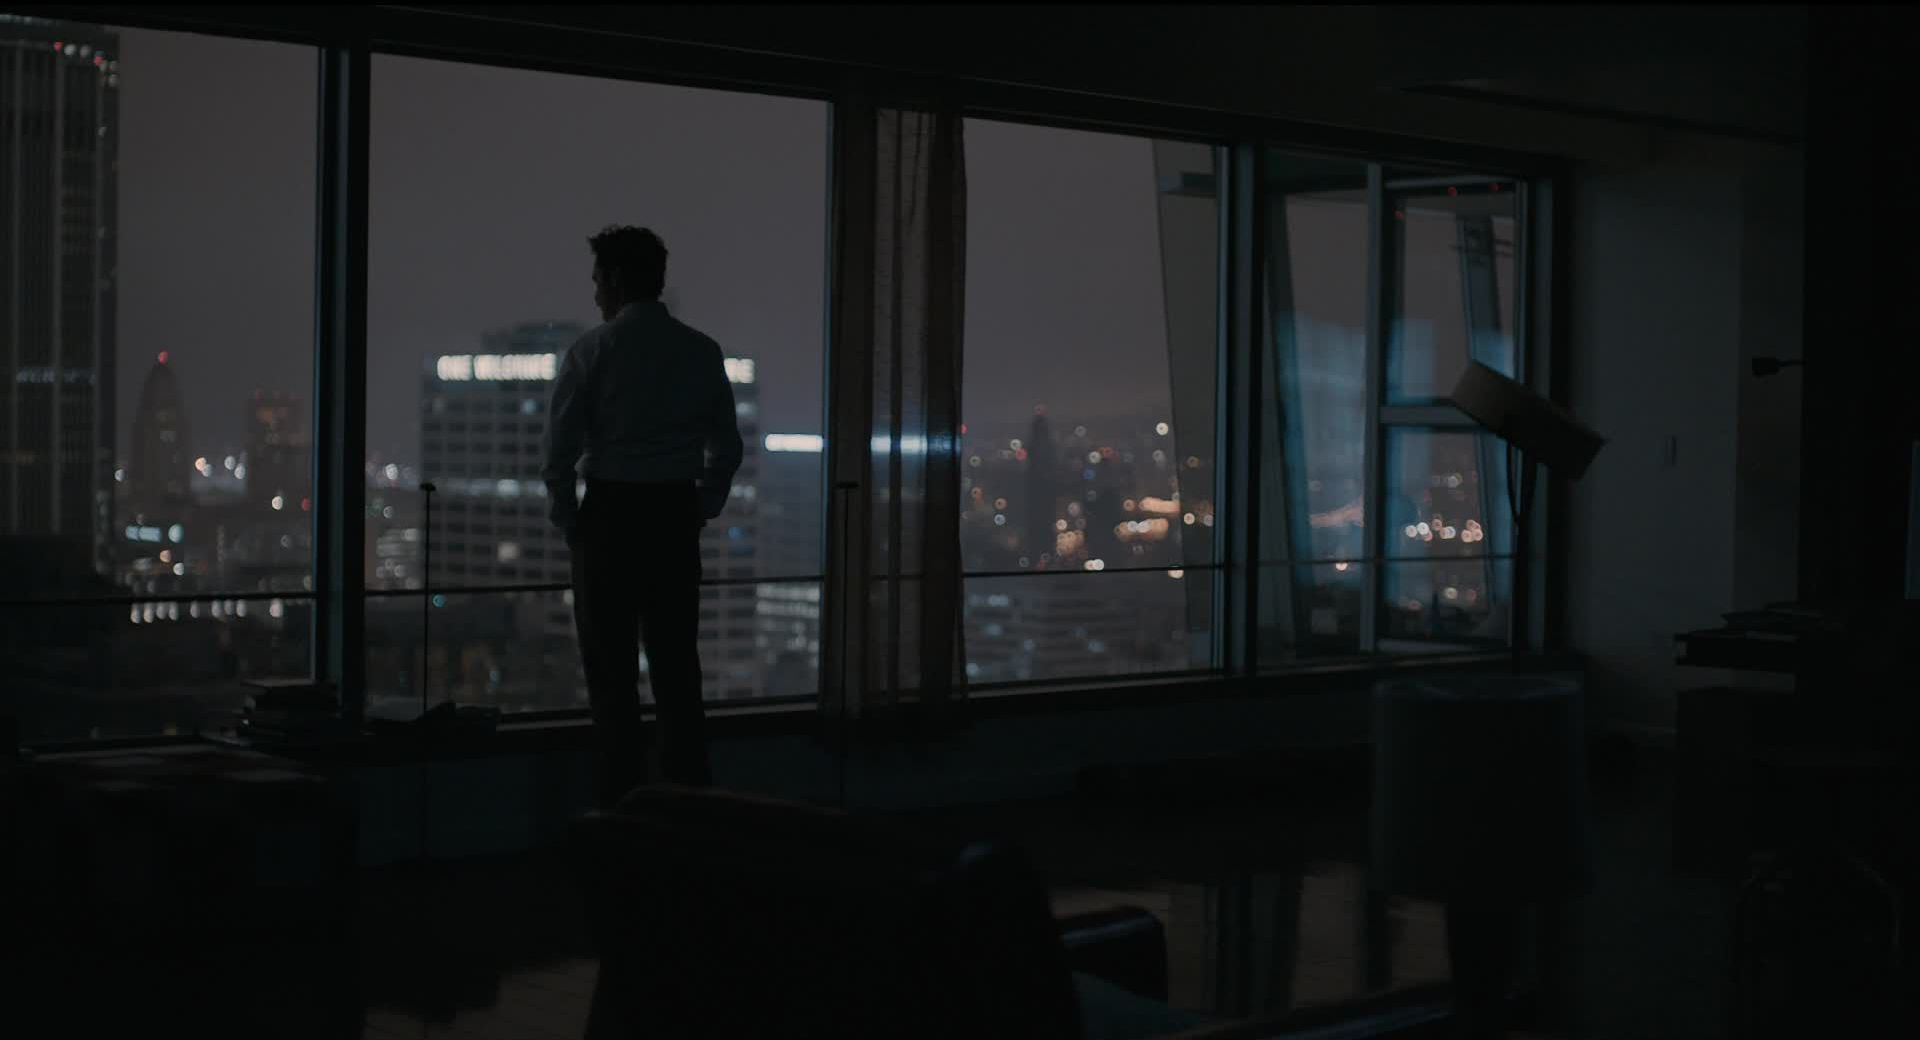 Bedroom at night time - Her Night Lighting Reference Spike Jonze Hoyte Van Hoytema